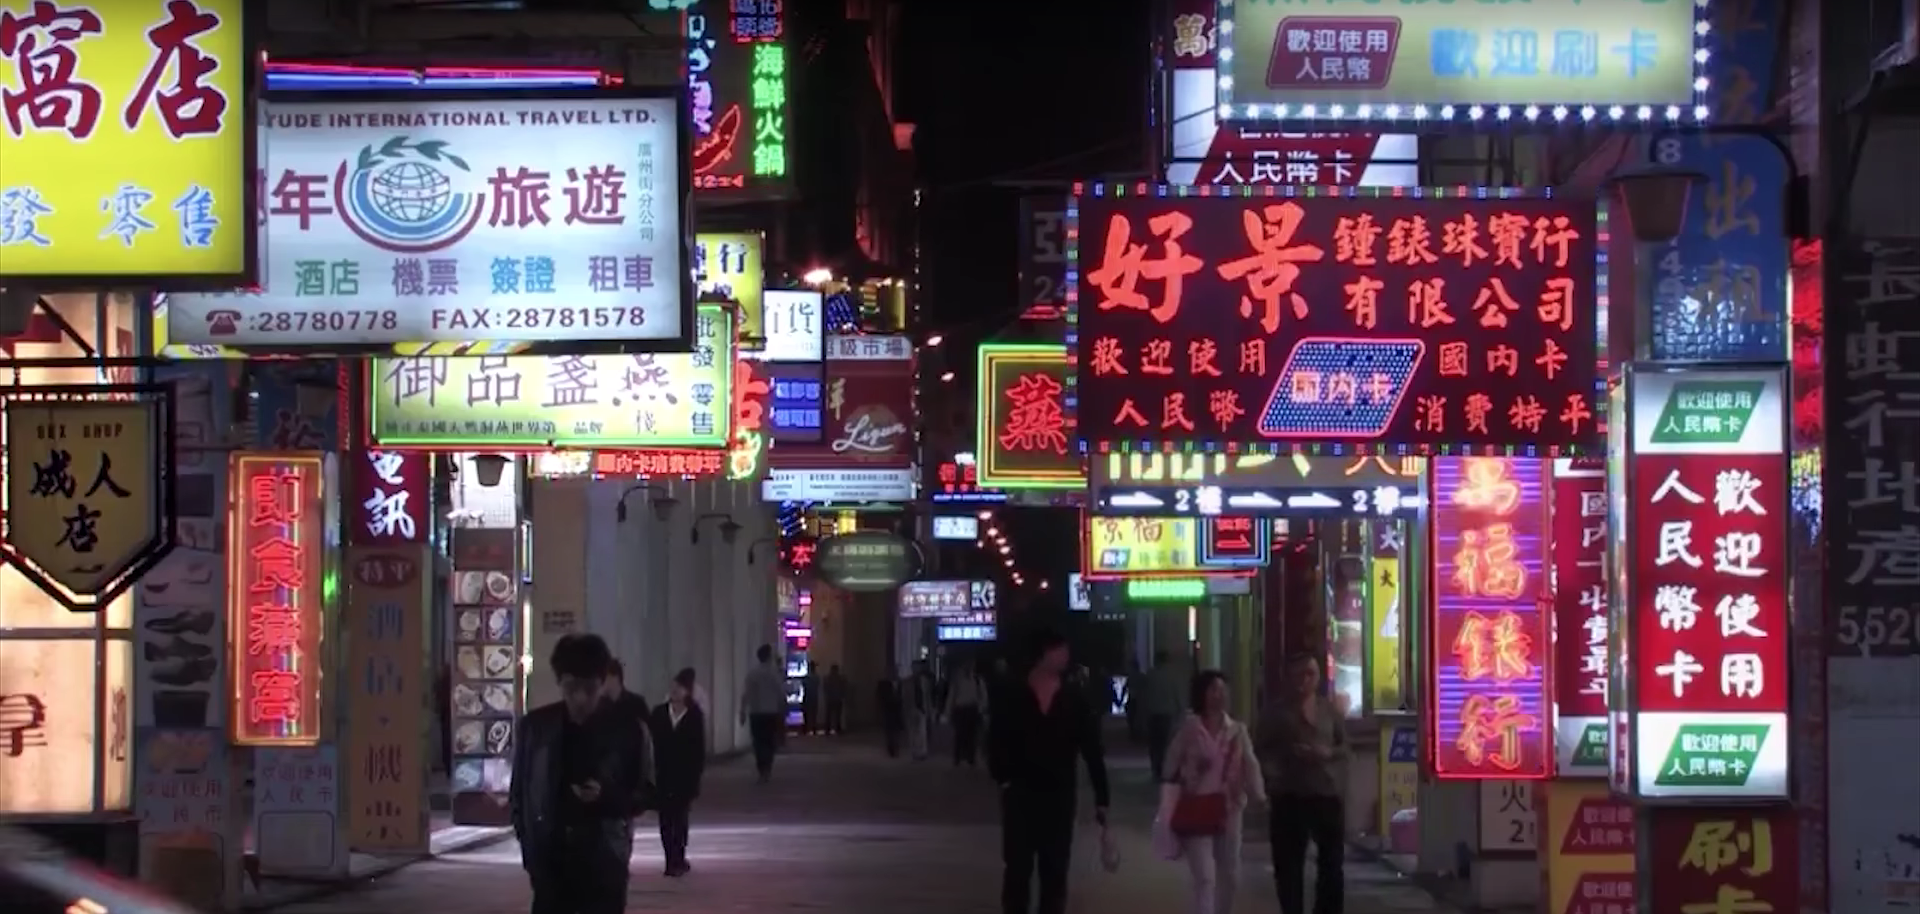 A moody Macao street scene from 'The Last Time I Saw Macao' (2012) | ©Blackmaria